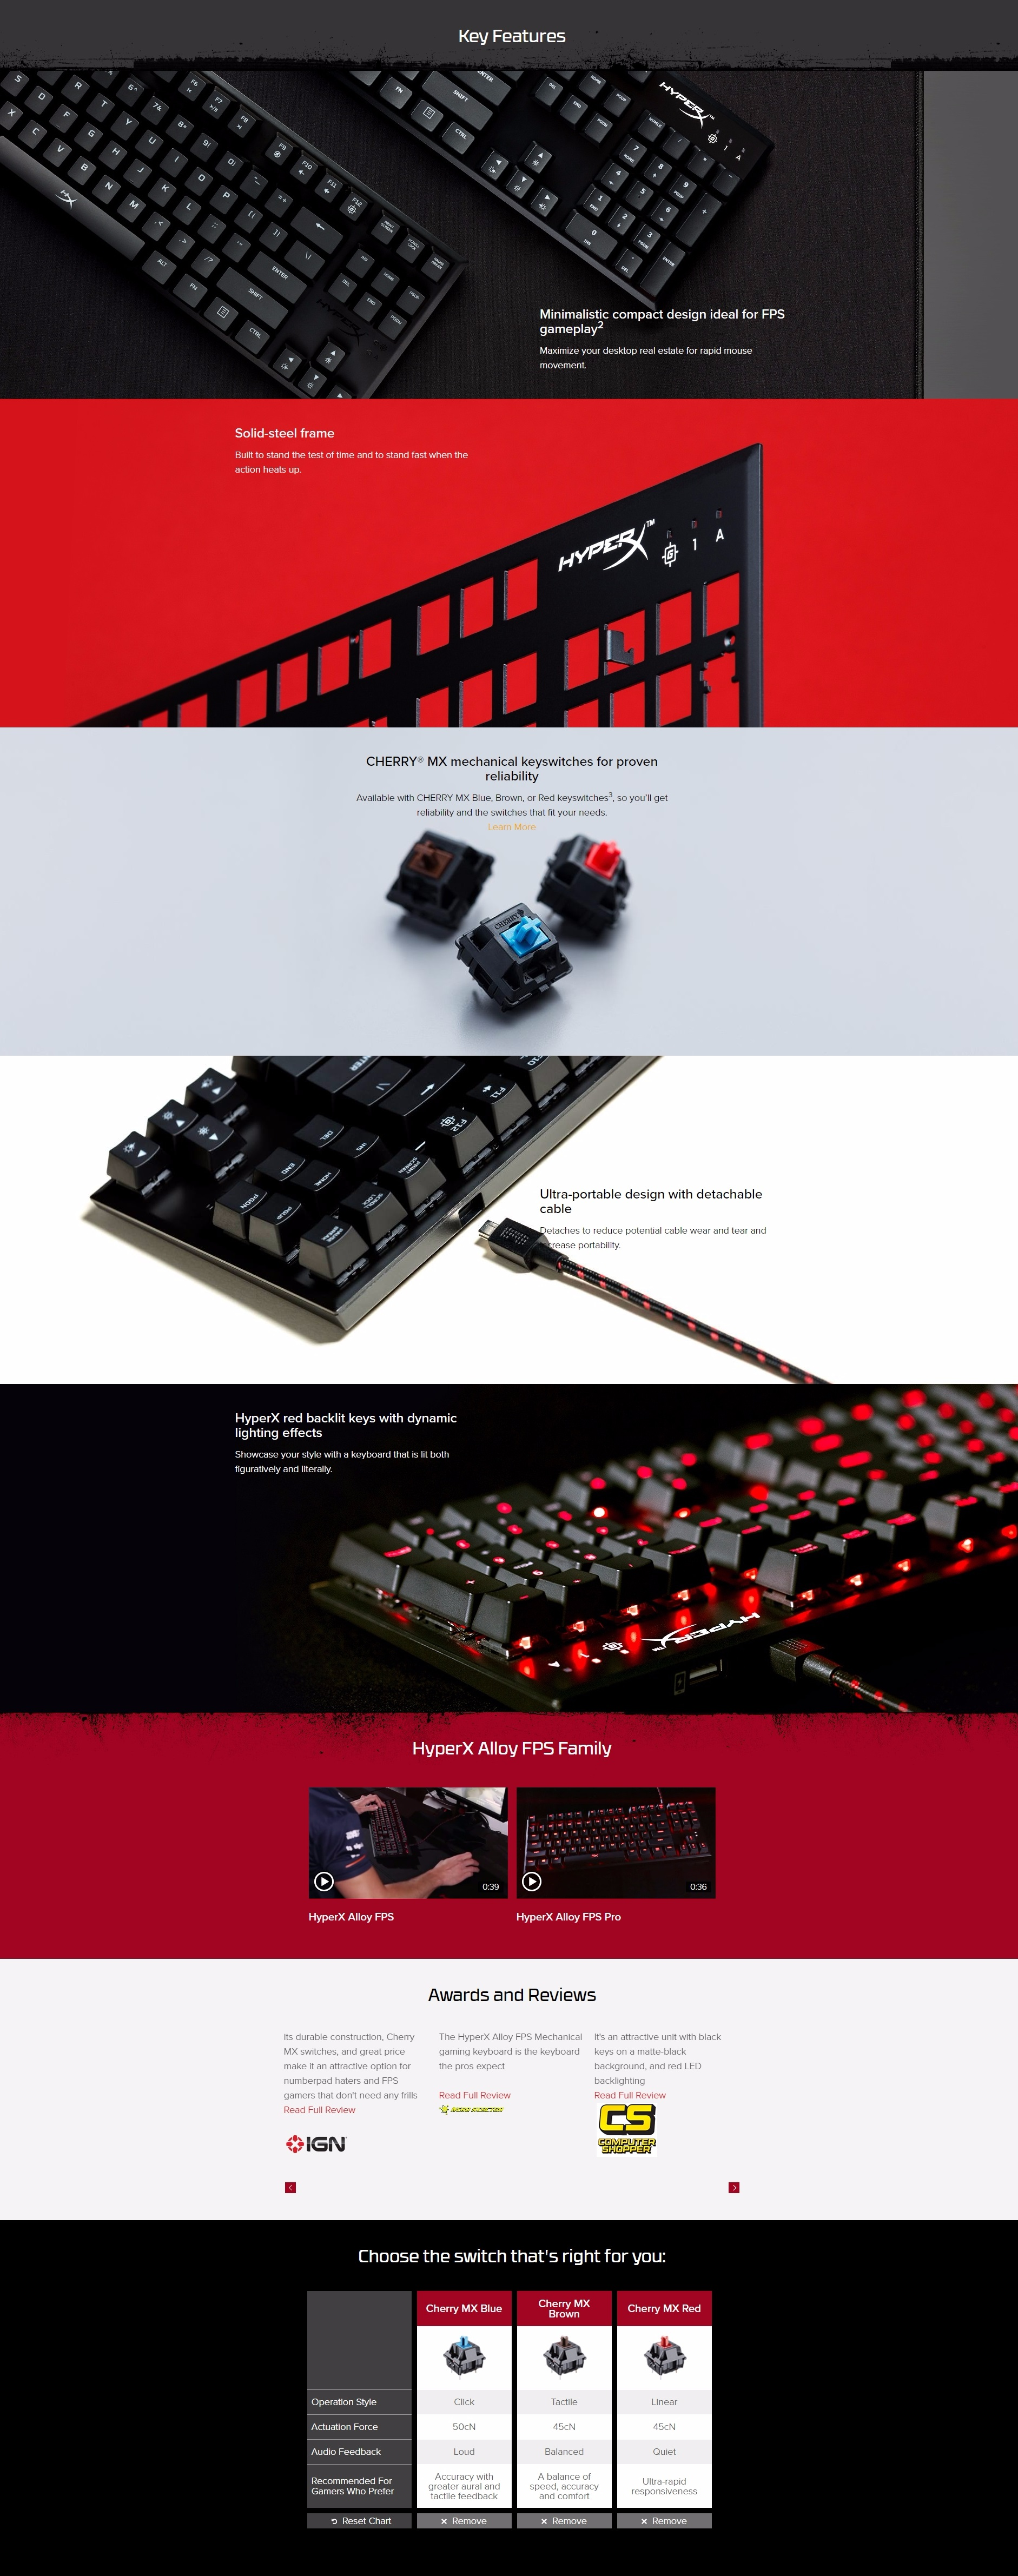 A large marketing image providing additional information about the product Kingston HyperX Alloy FPS Mechanical Gaming Keyboard (MX Red Switch) - Additional alt info not provided